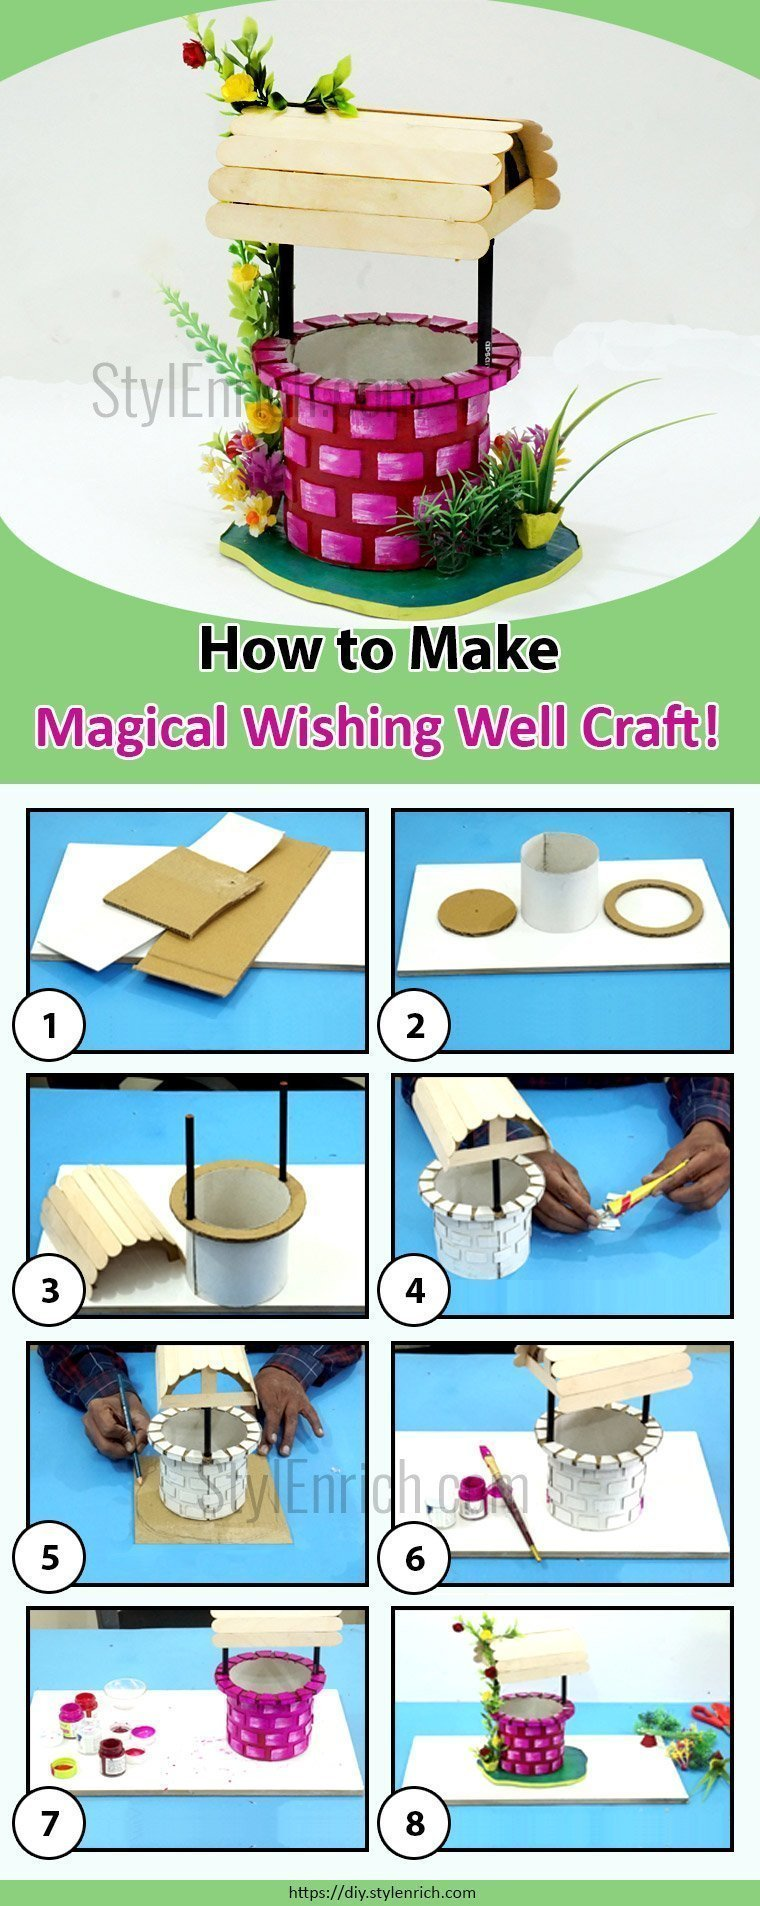 Learn Making Magical Wishing Well Craft for Home Decor